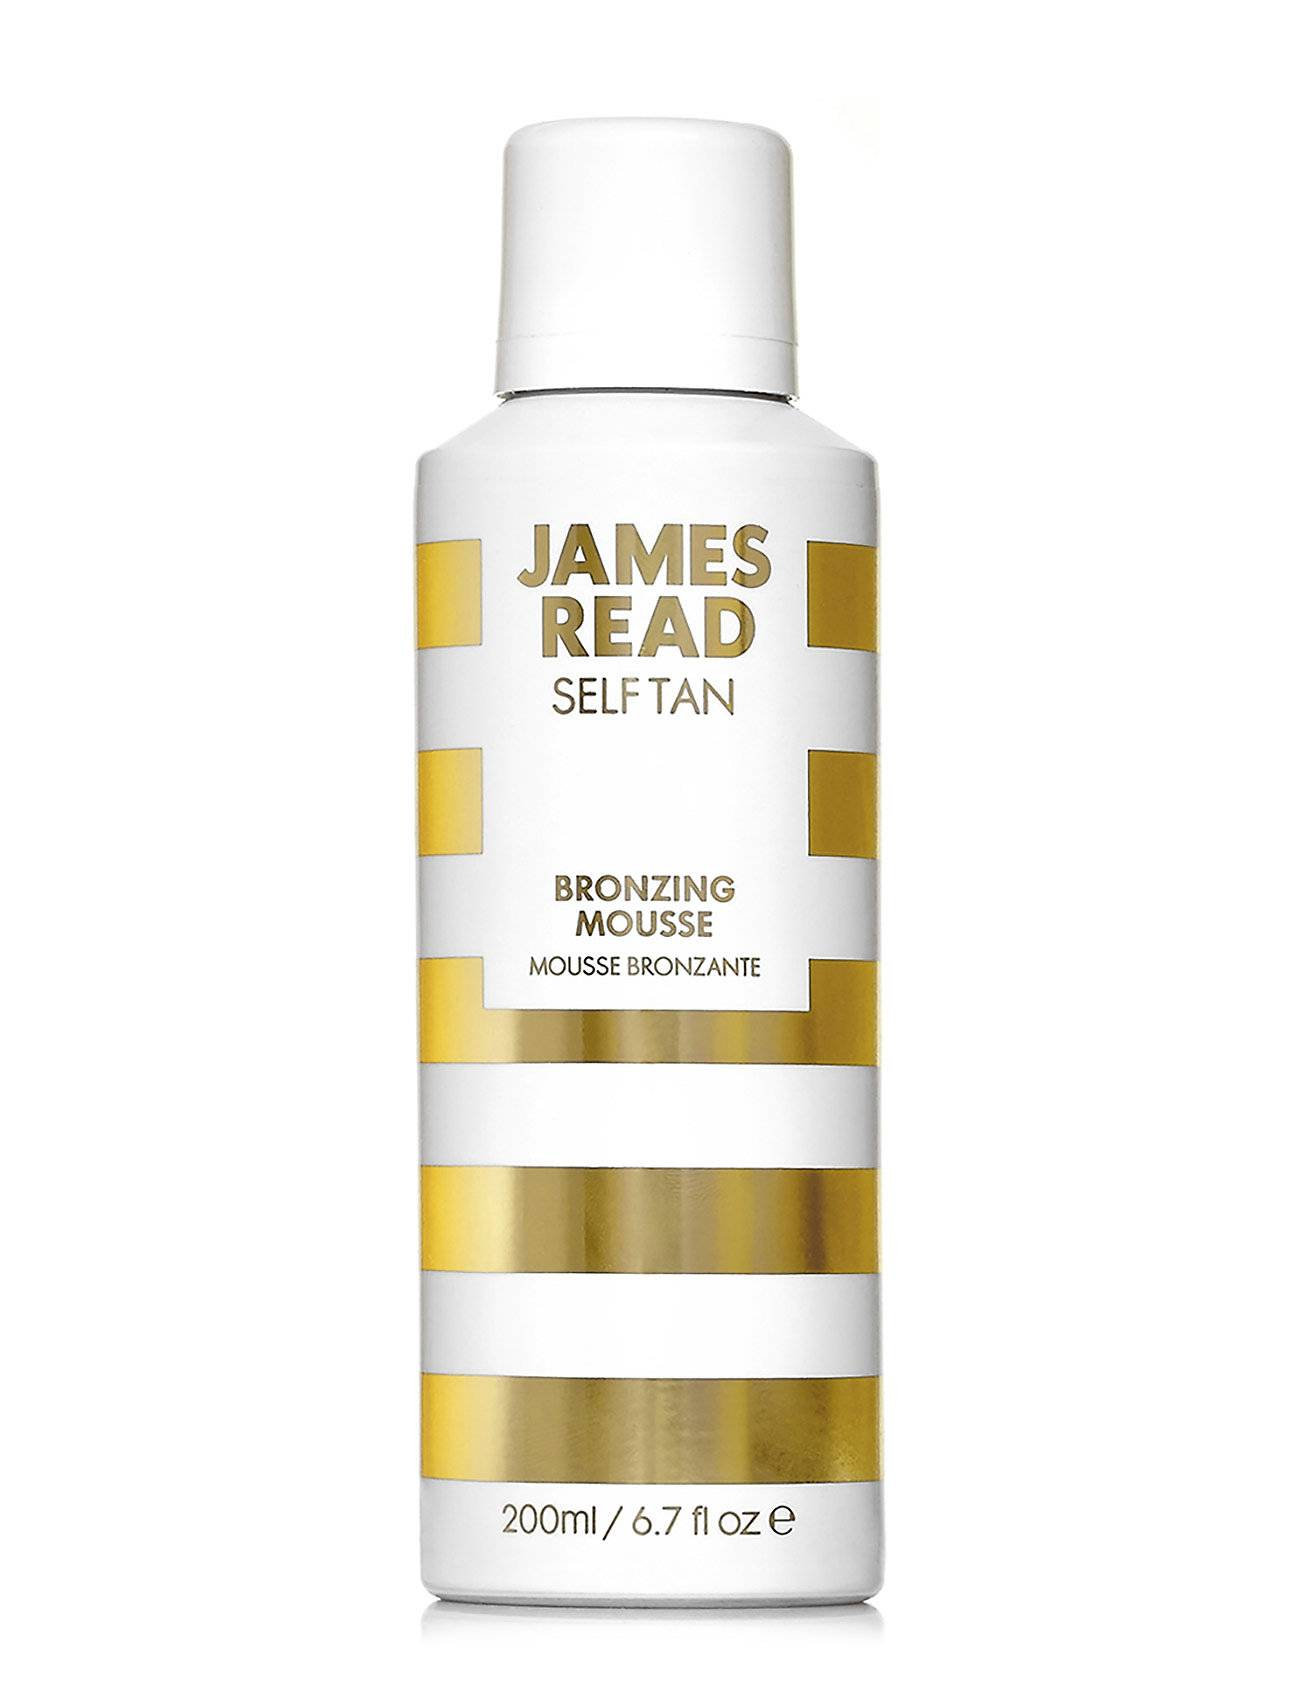 James Read Bronzing Mousse Face & Body